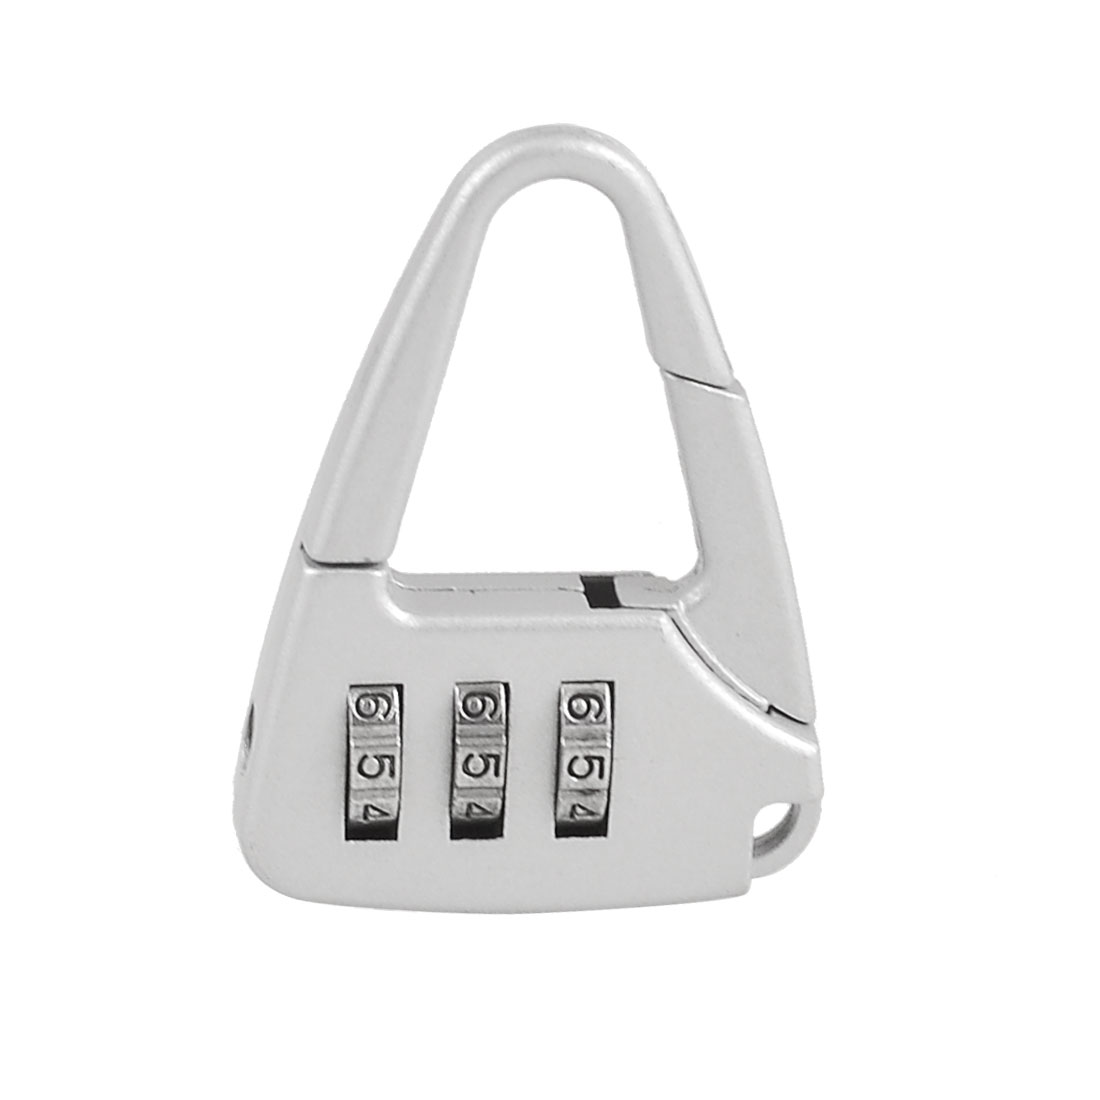 Metal Handbag Shaped 3 Digit Resettable Combination Code Lock Silver Tone